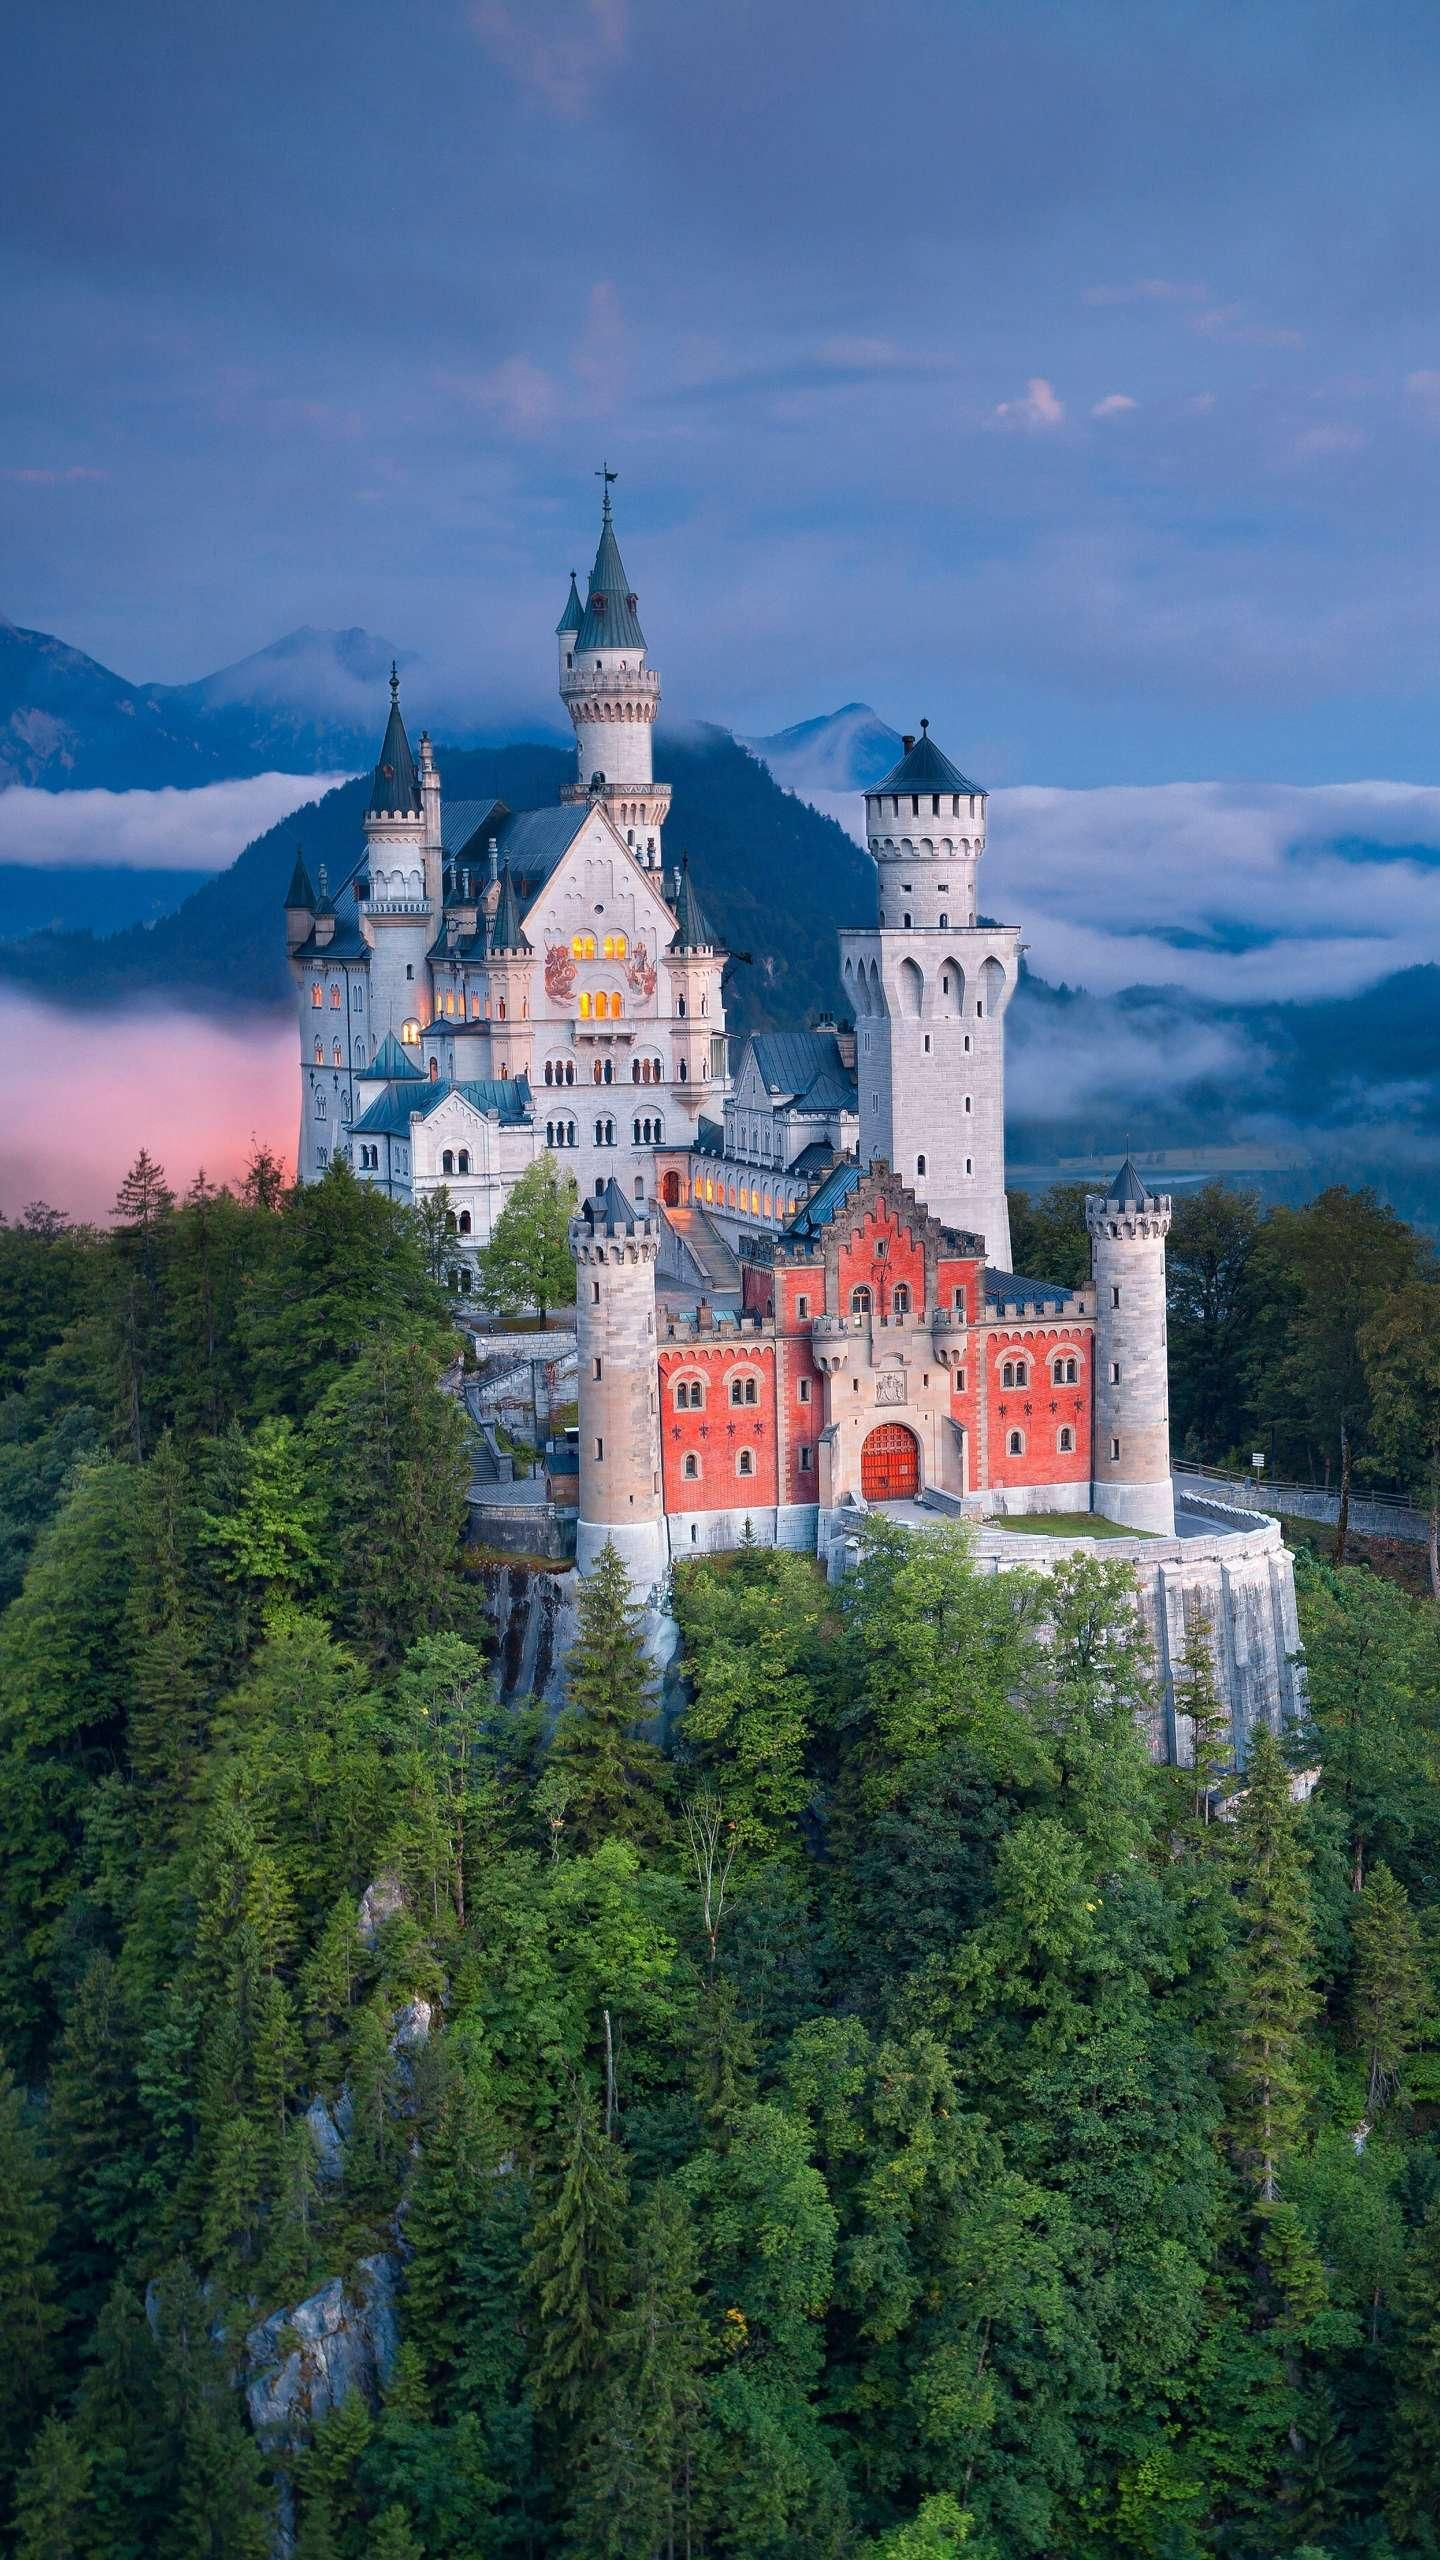 Neuschwanstein, Germany. Neuschwanstein Castle is a symbol of Germany. It is also known as the Snow White Castle because it is the prototype of Disney Castle.